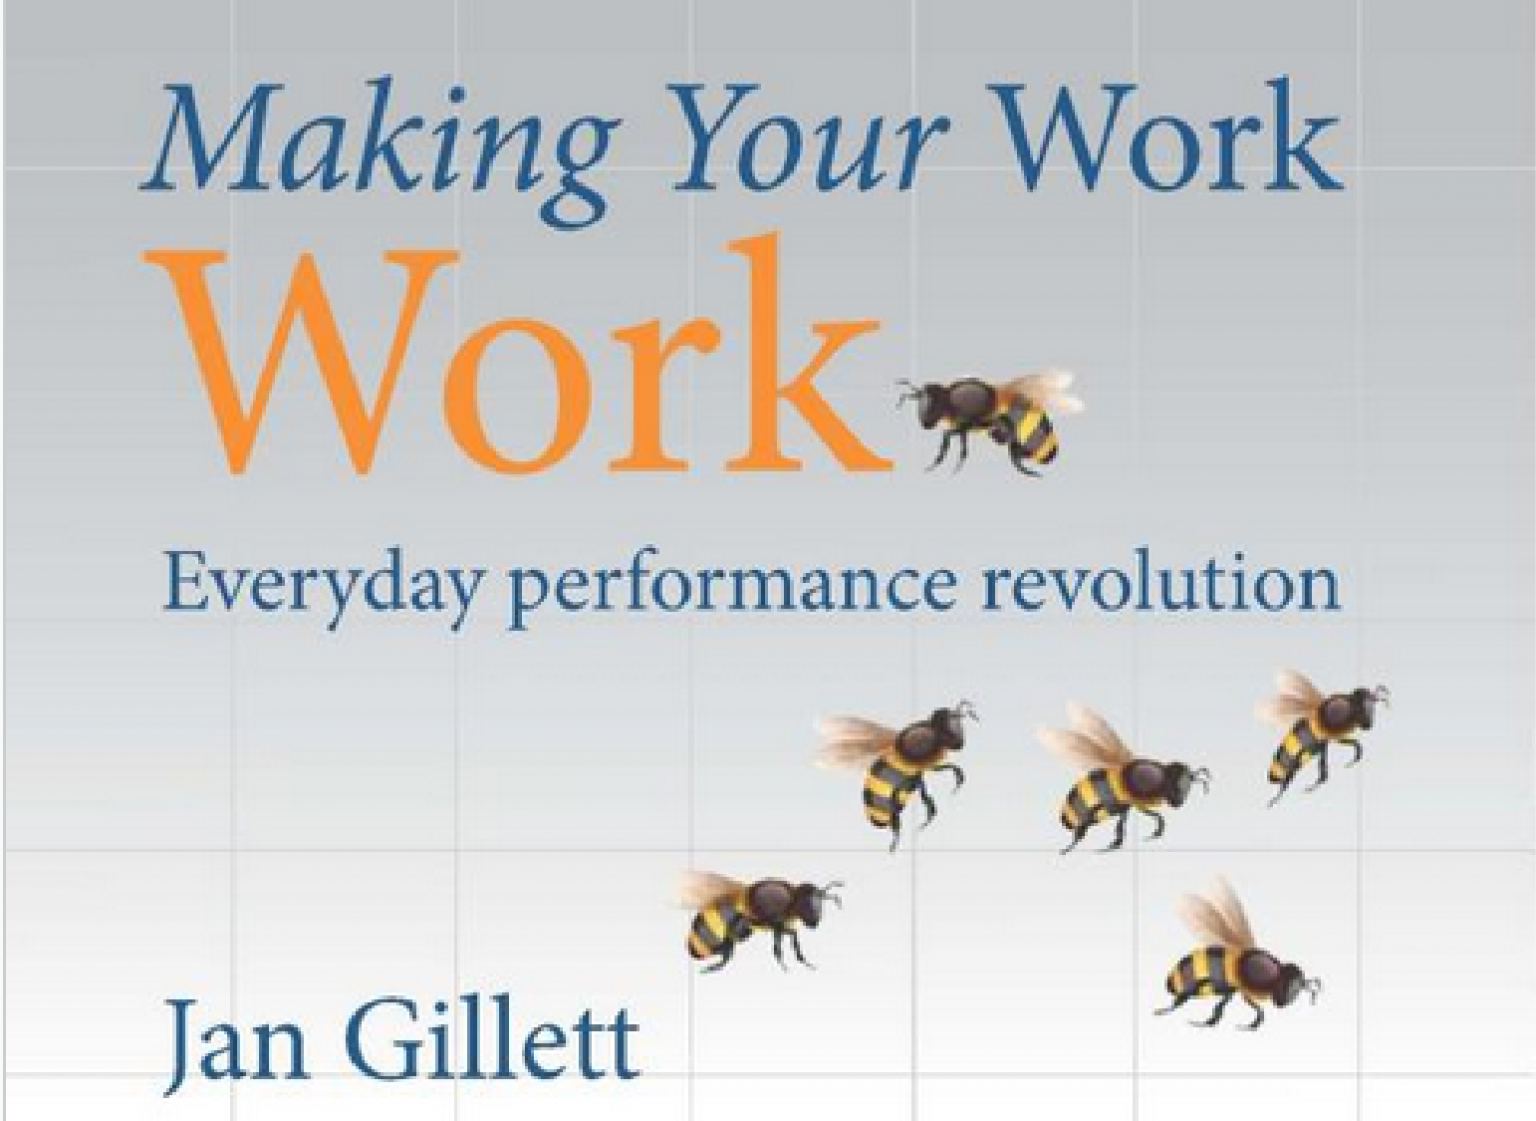 Jan Gillet talks about his book: 'Making Your Work, Work'